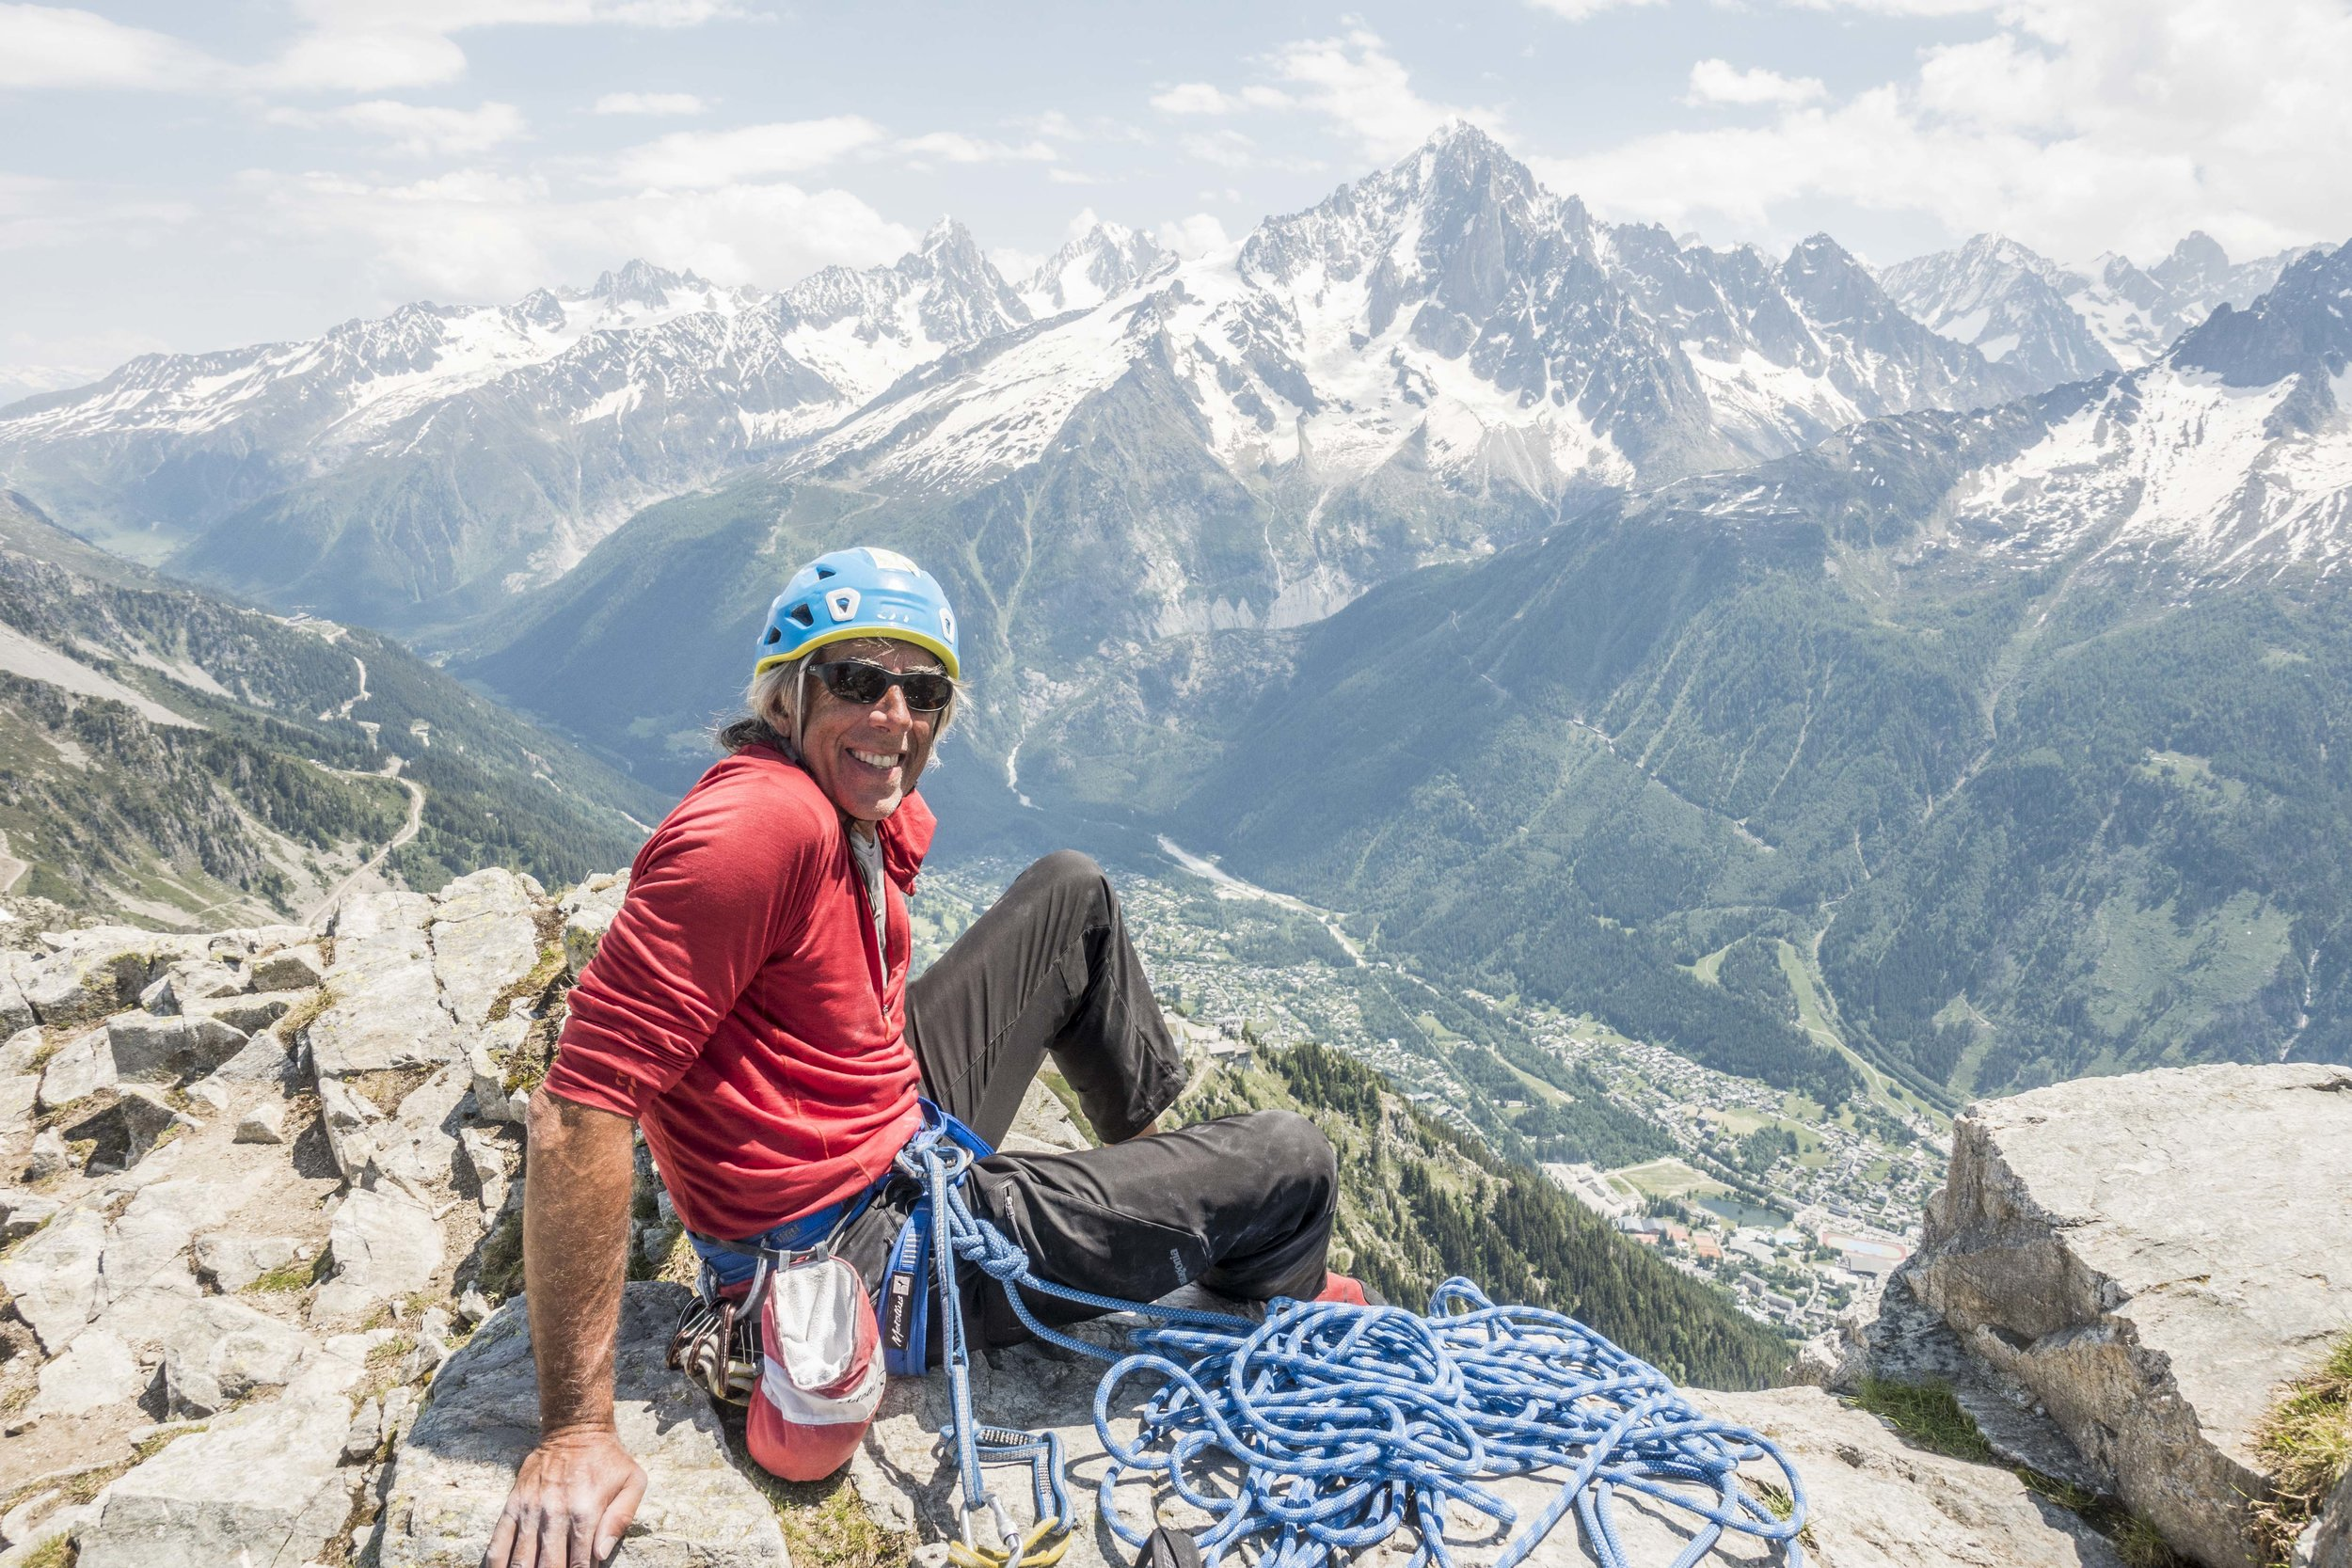 Paul on recent day of carefree alpine cragging in Chamonix